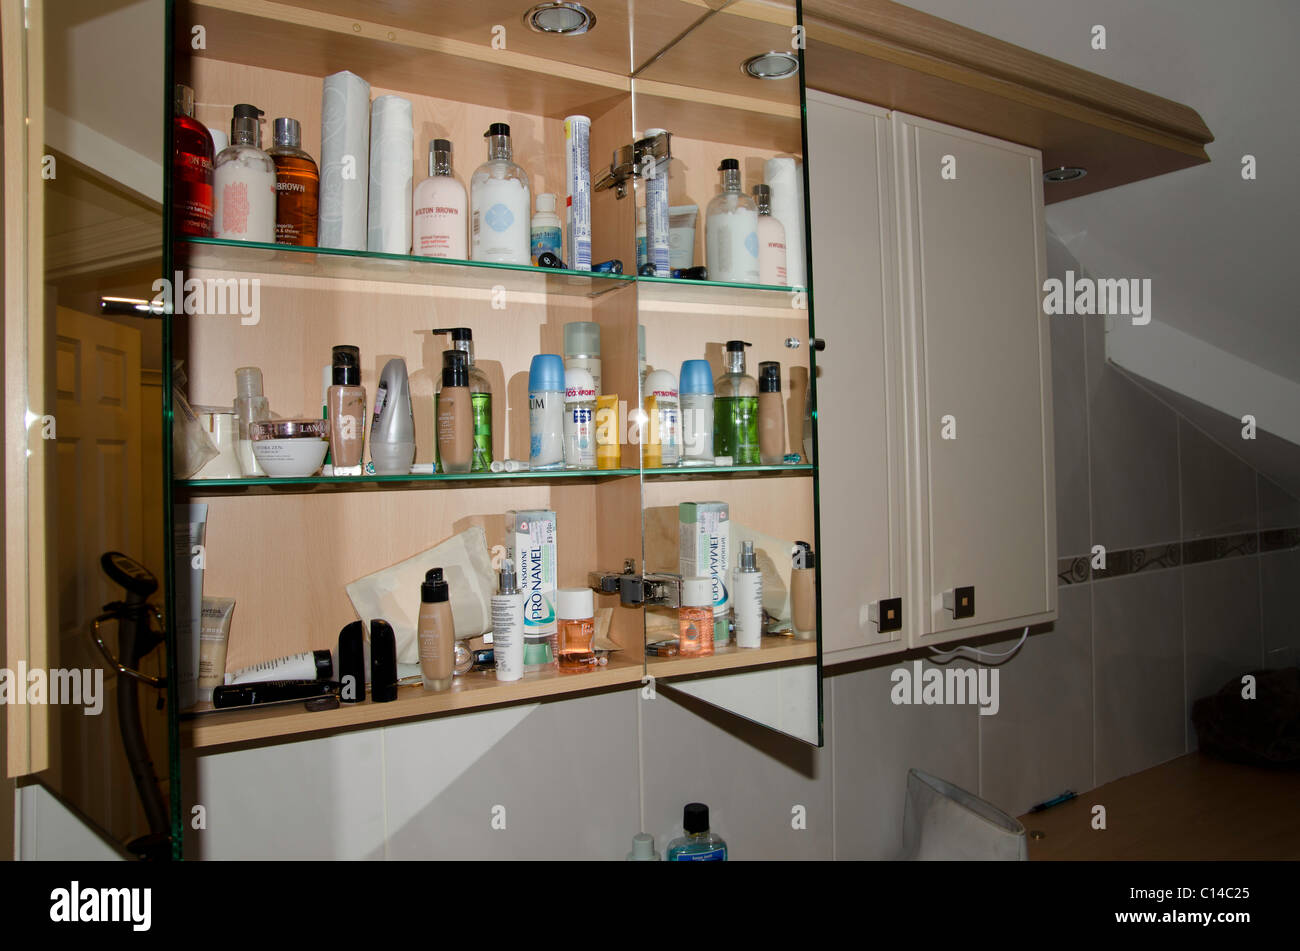 Toiletries and medicines in the Bathroom cabinet - Stock Image